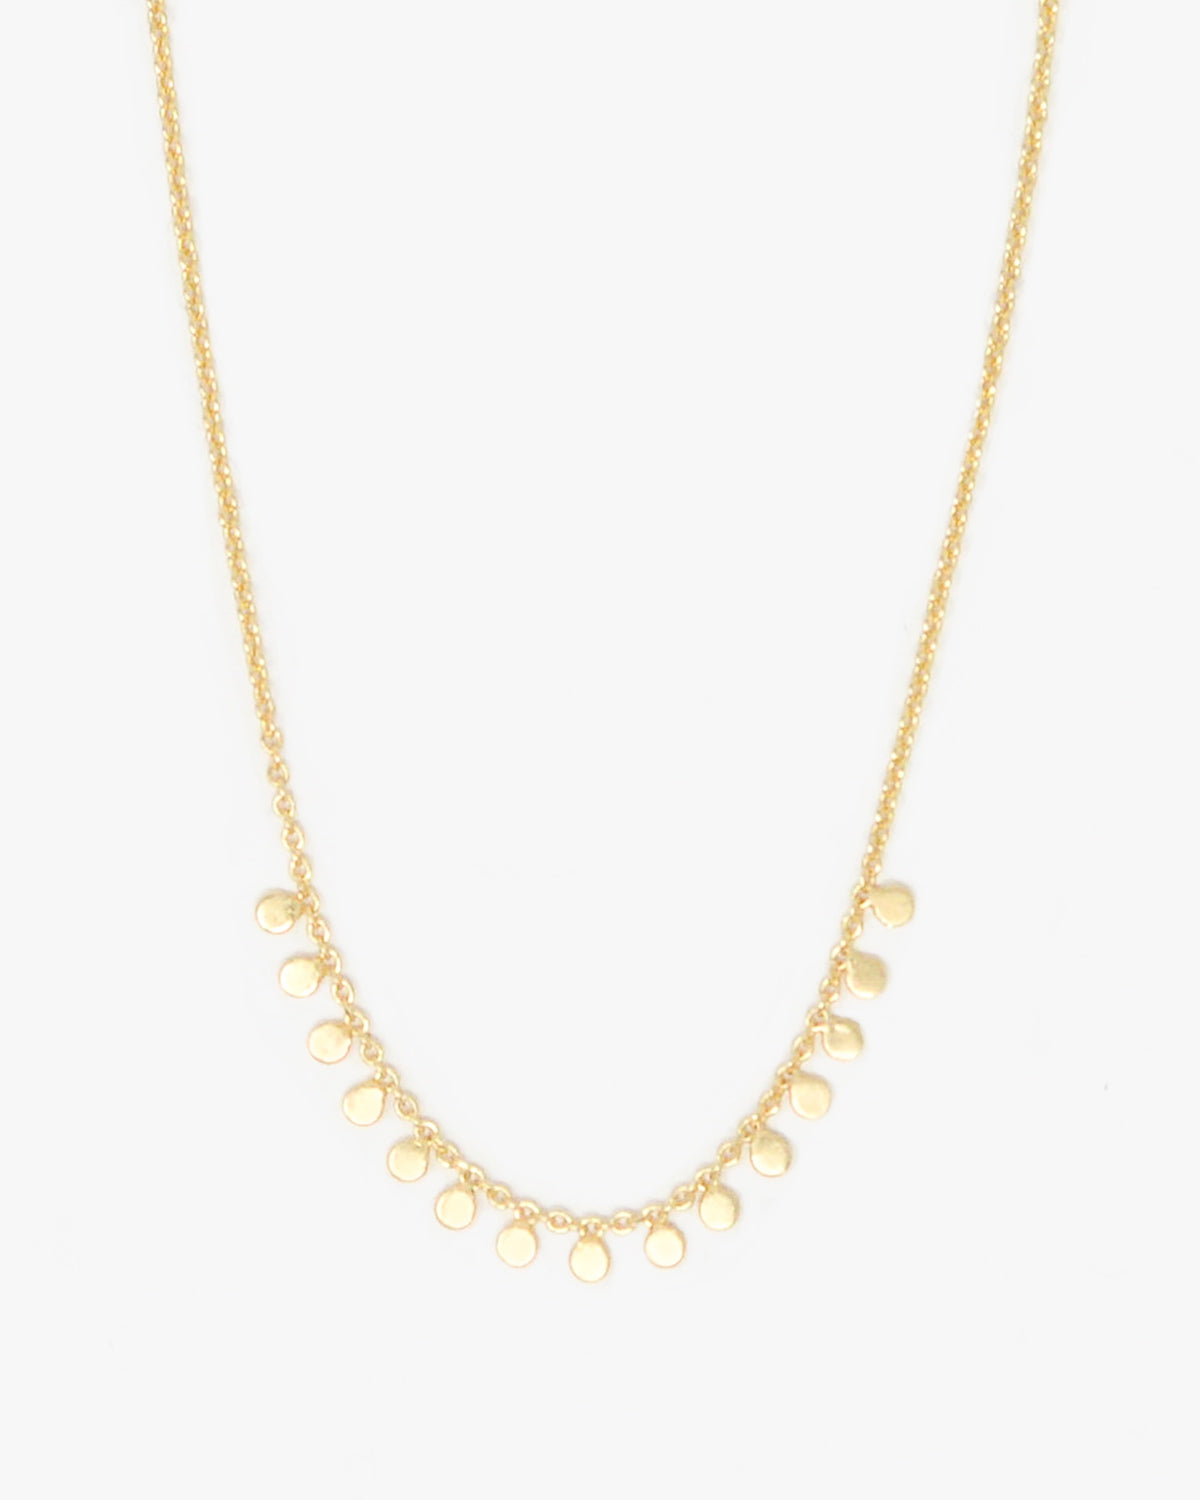 FAIRFAX 15 DISC SHAKER NECKLACE